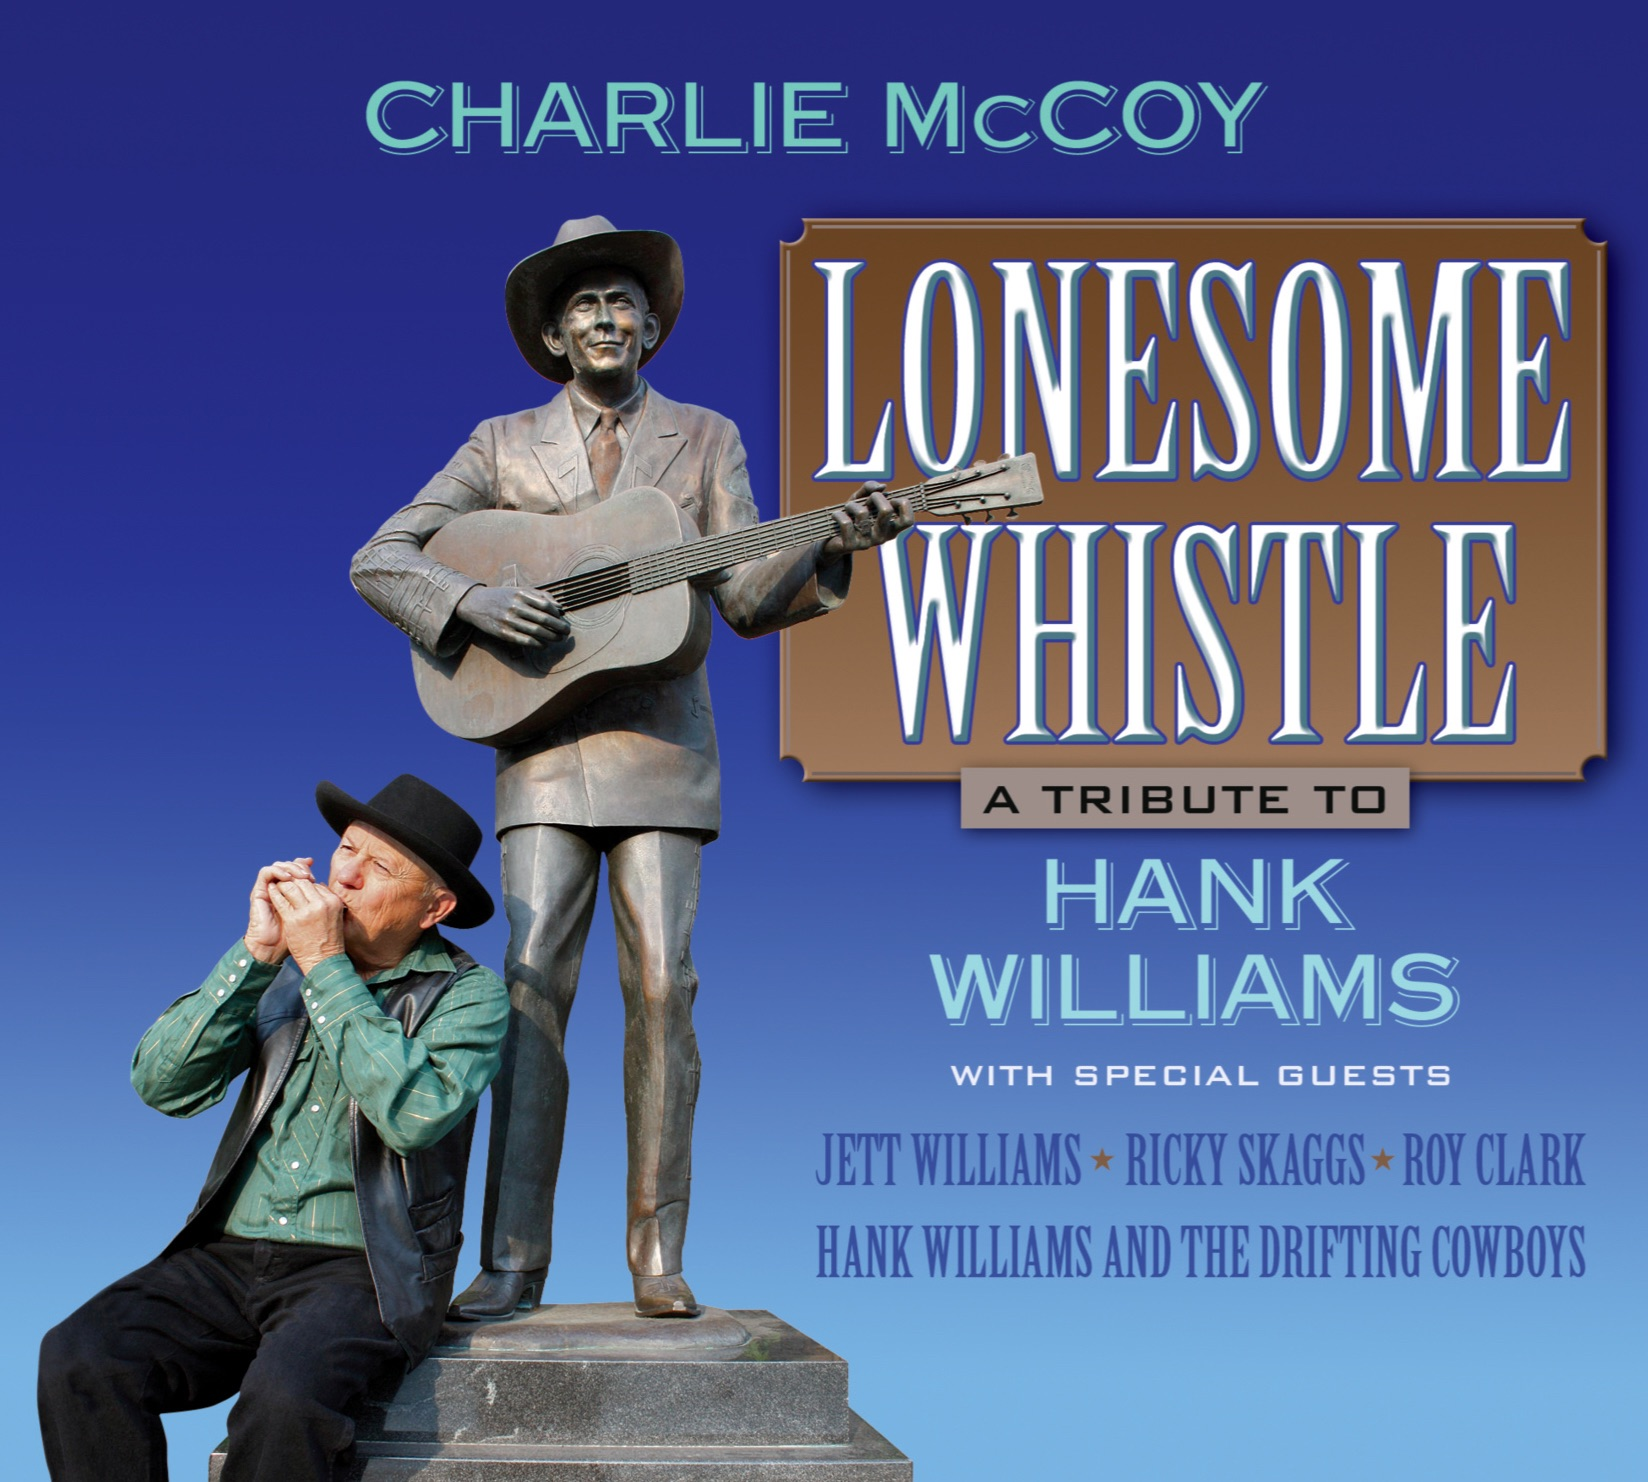 Lonesome Whistle (A Tribute To Hank Williams)